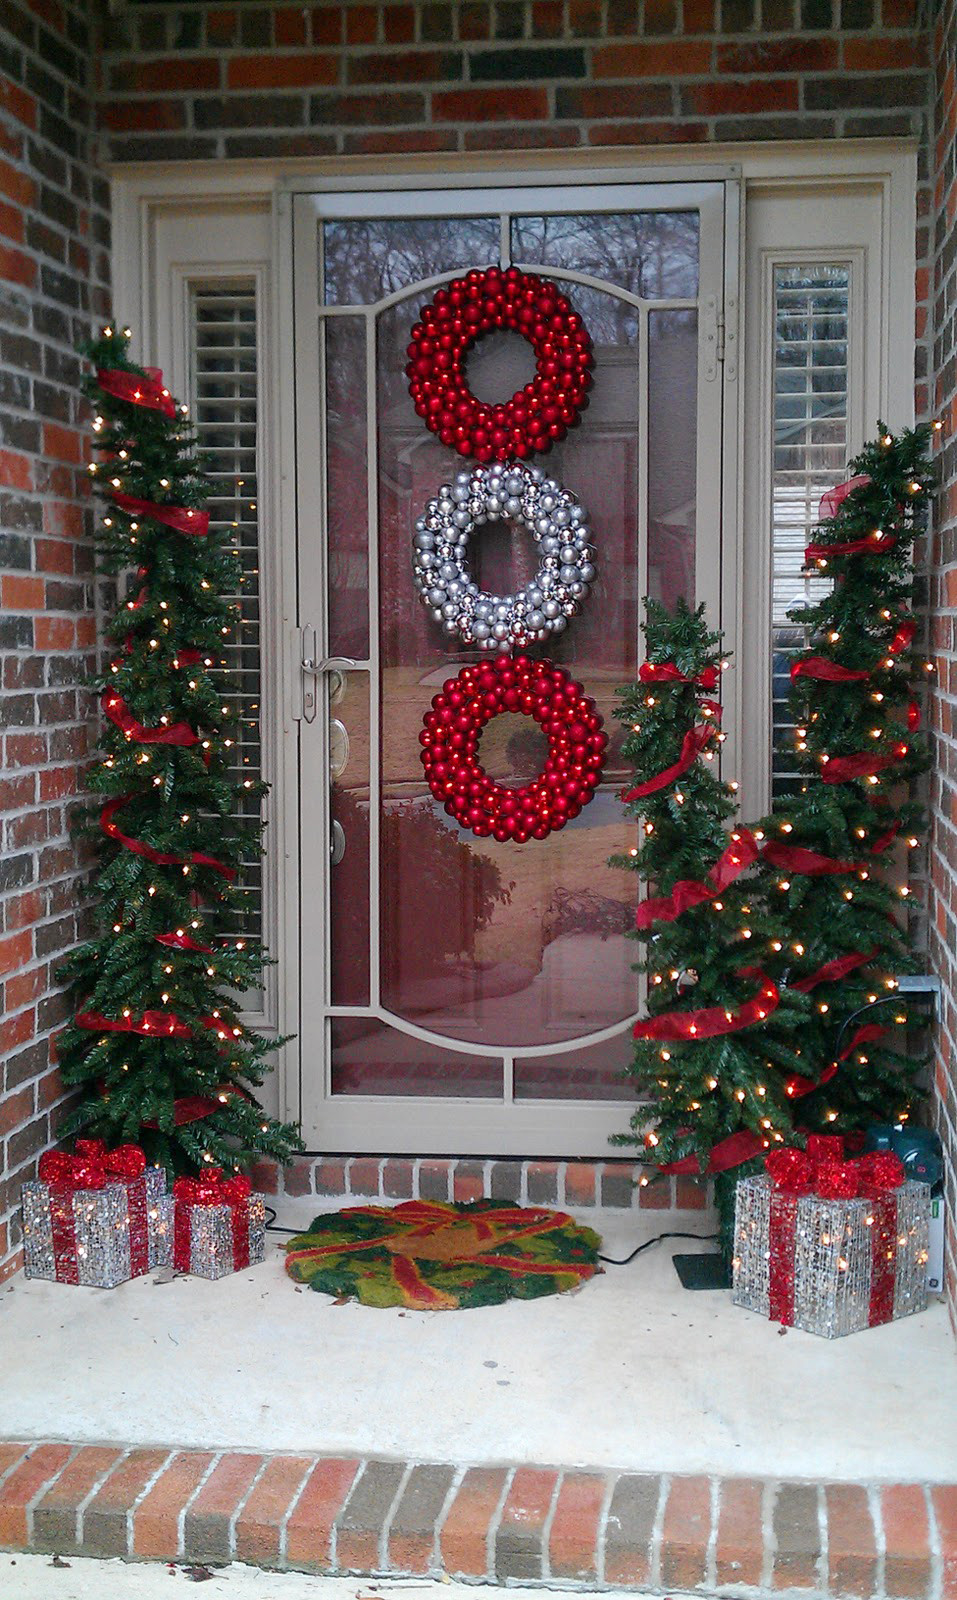 Best ideas about Outdoor Christmas Decor . Save or Pin 50 Best Outdoor Christmas Decorations for 2017 Now.